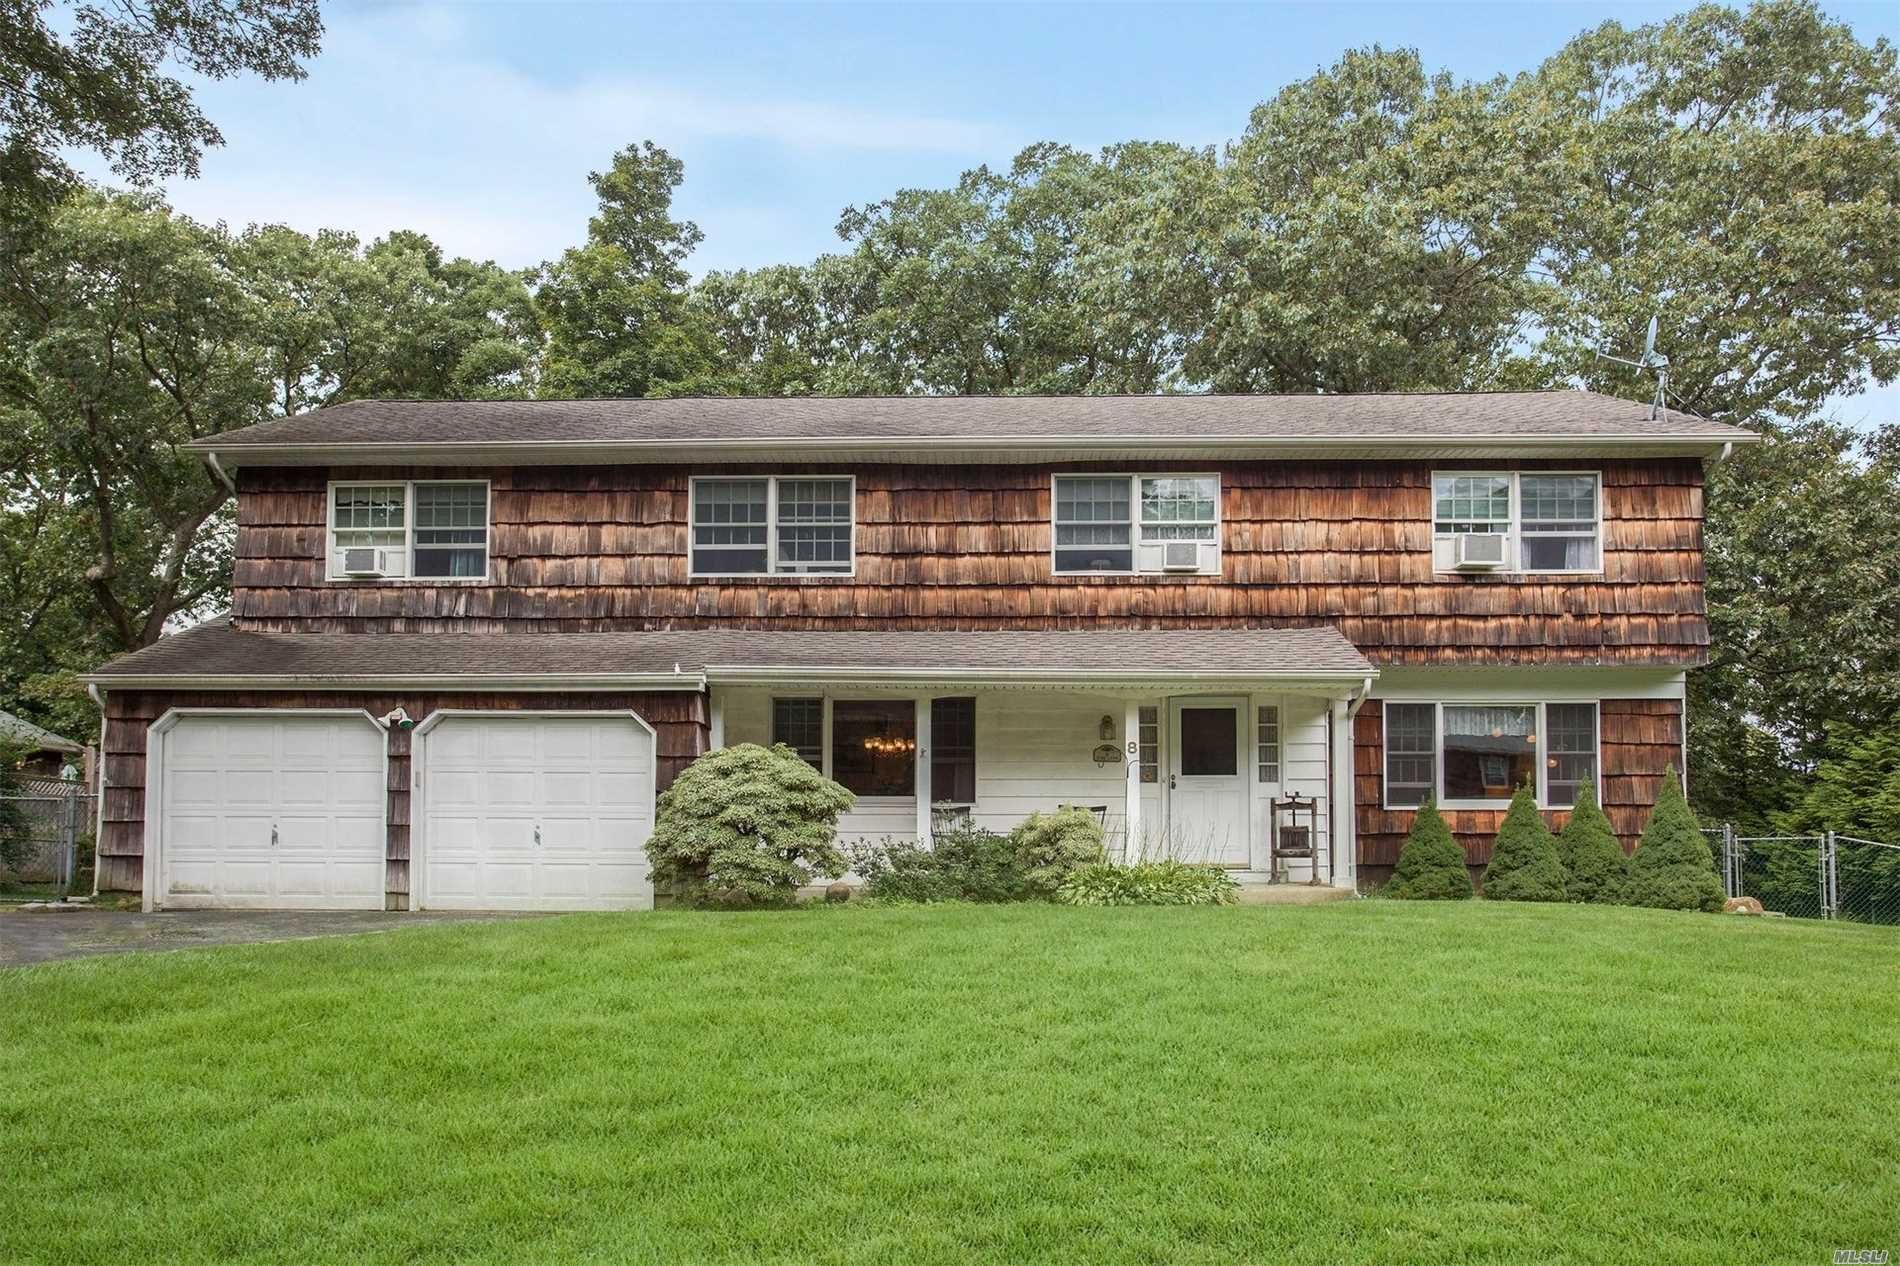 8 Tobi Ln - Setauket, New York